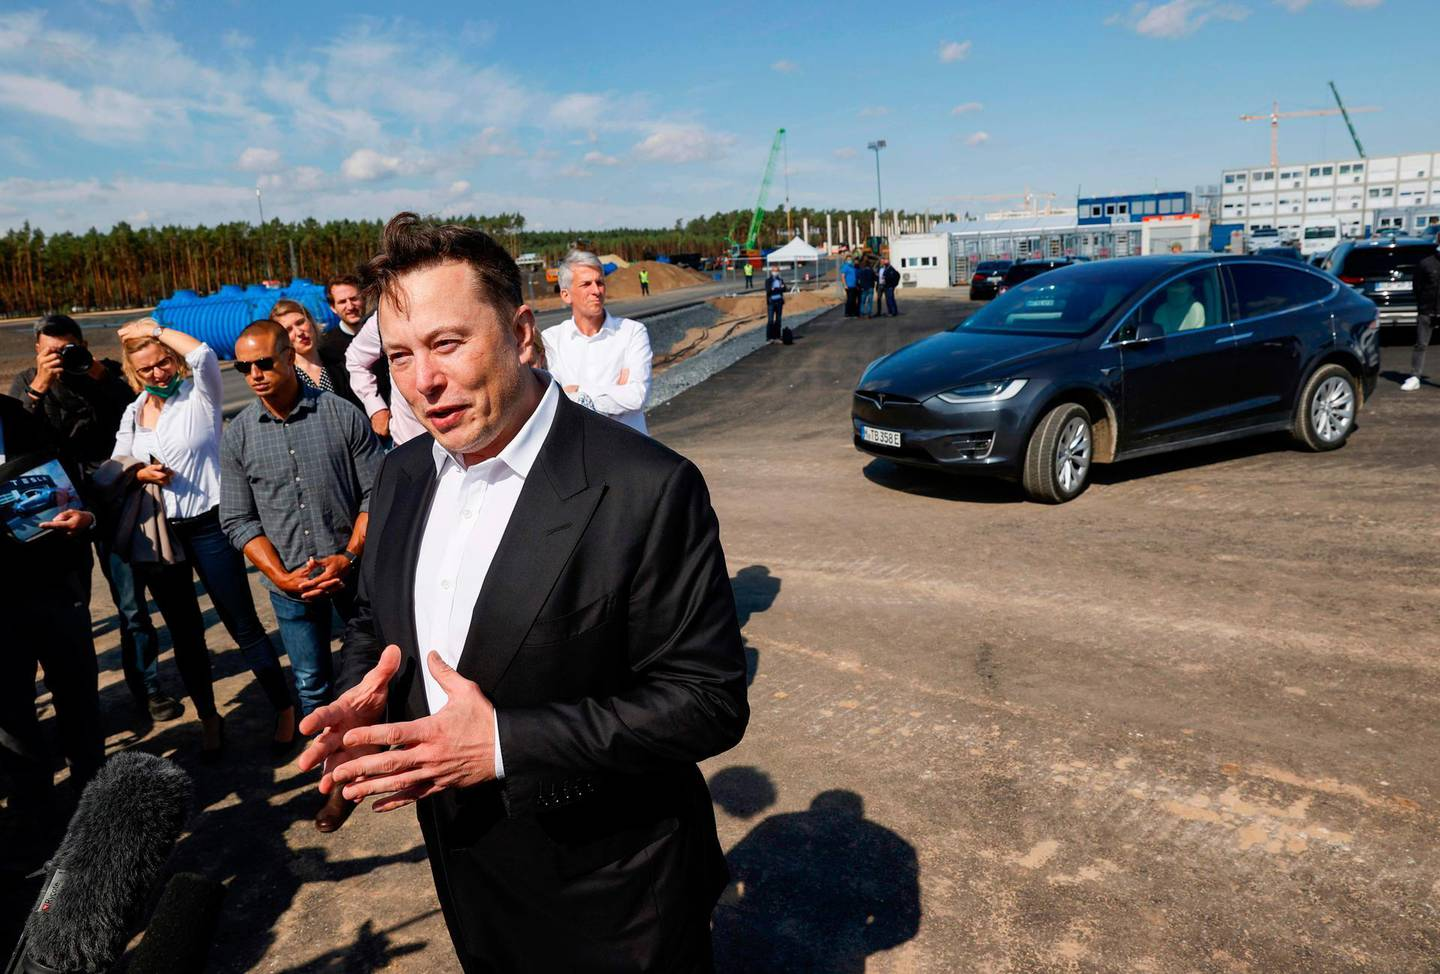 """Tesla CEO Elon Musk talks to media as he arrives to visit the construction site of the future US electric car giant Tesla, on September 03, 2020 in Gruenheide near Berlin. Tesla builds a compound at the site in Gruenheide in Brandenburg for its first European """"Gigafactory"""" near Berlin. / AFP / Odd ANDERSEN"""